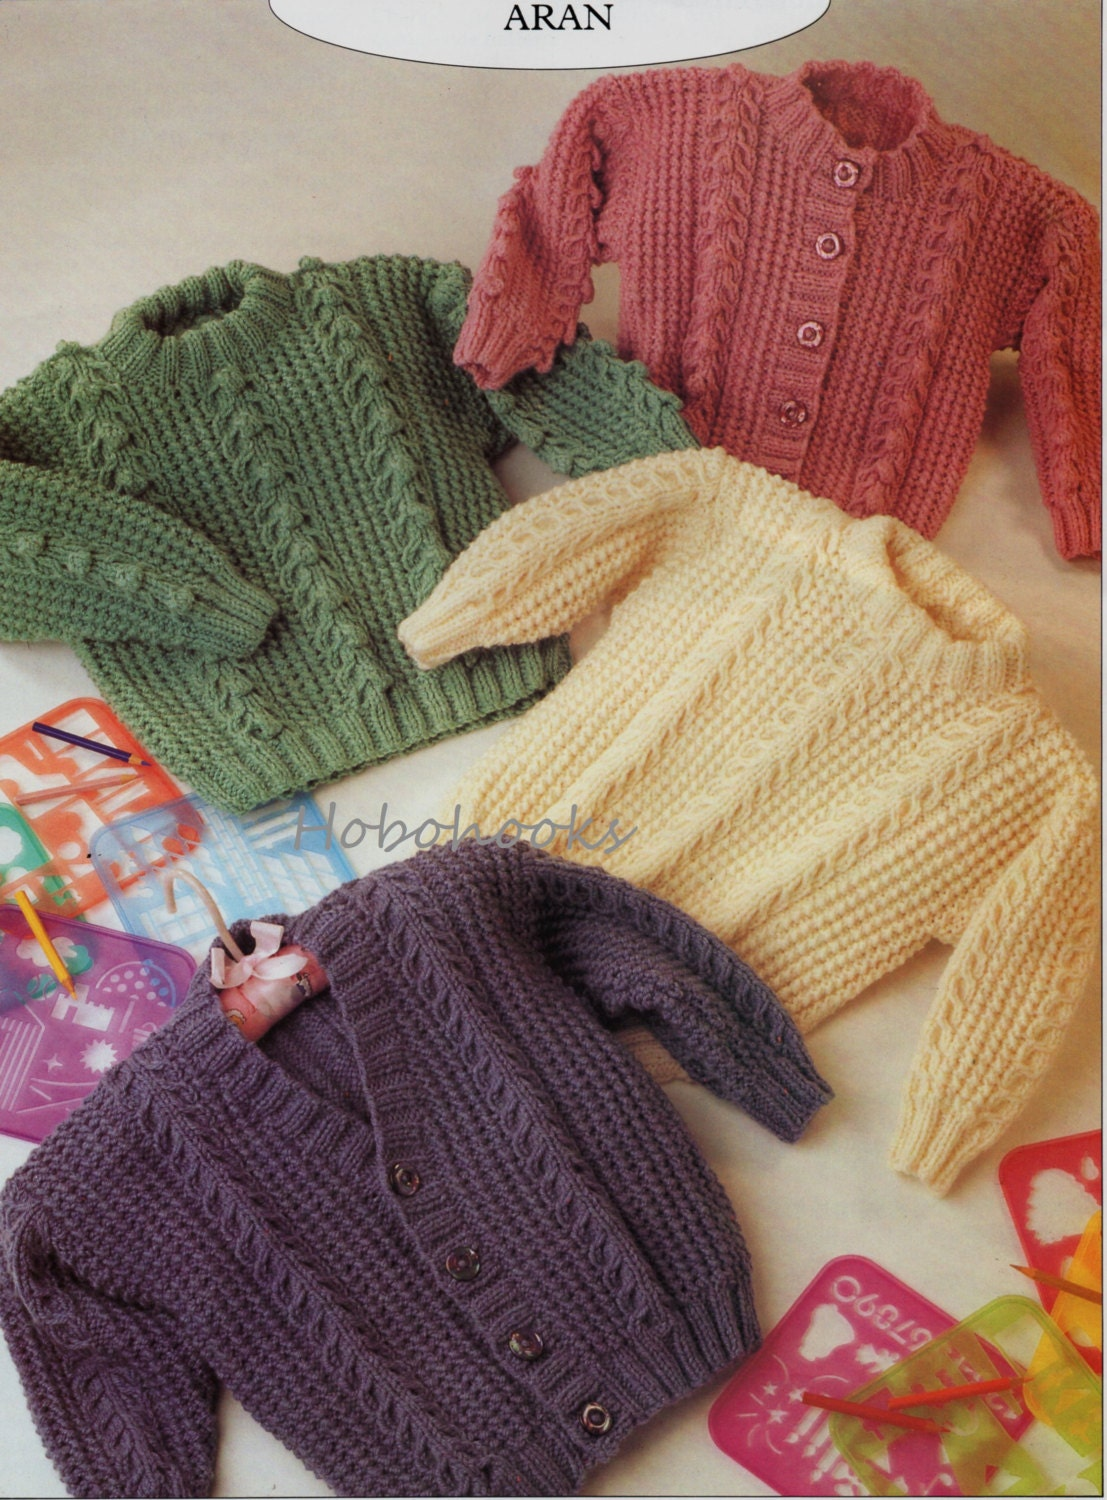 Free Knitting Patterns For Childrens Aran Sweaters : Baby Knitting Pattern Childs Knitting Pattern aran jumper aran